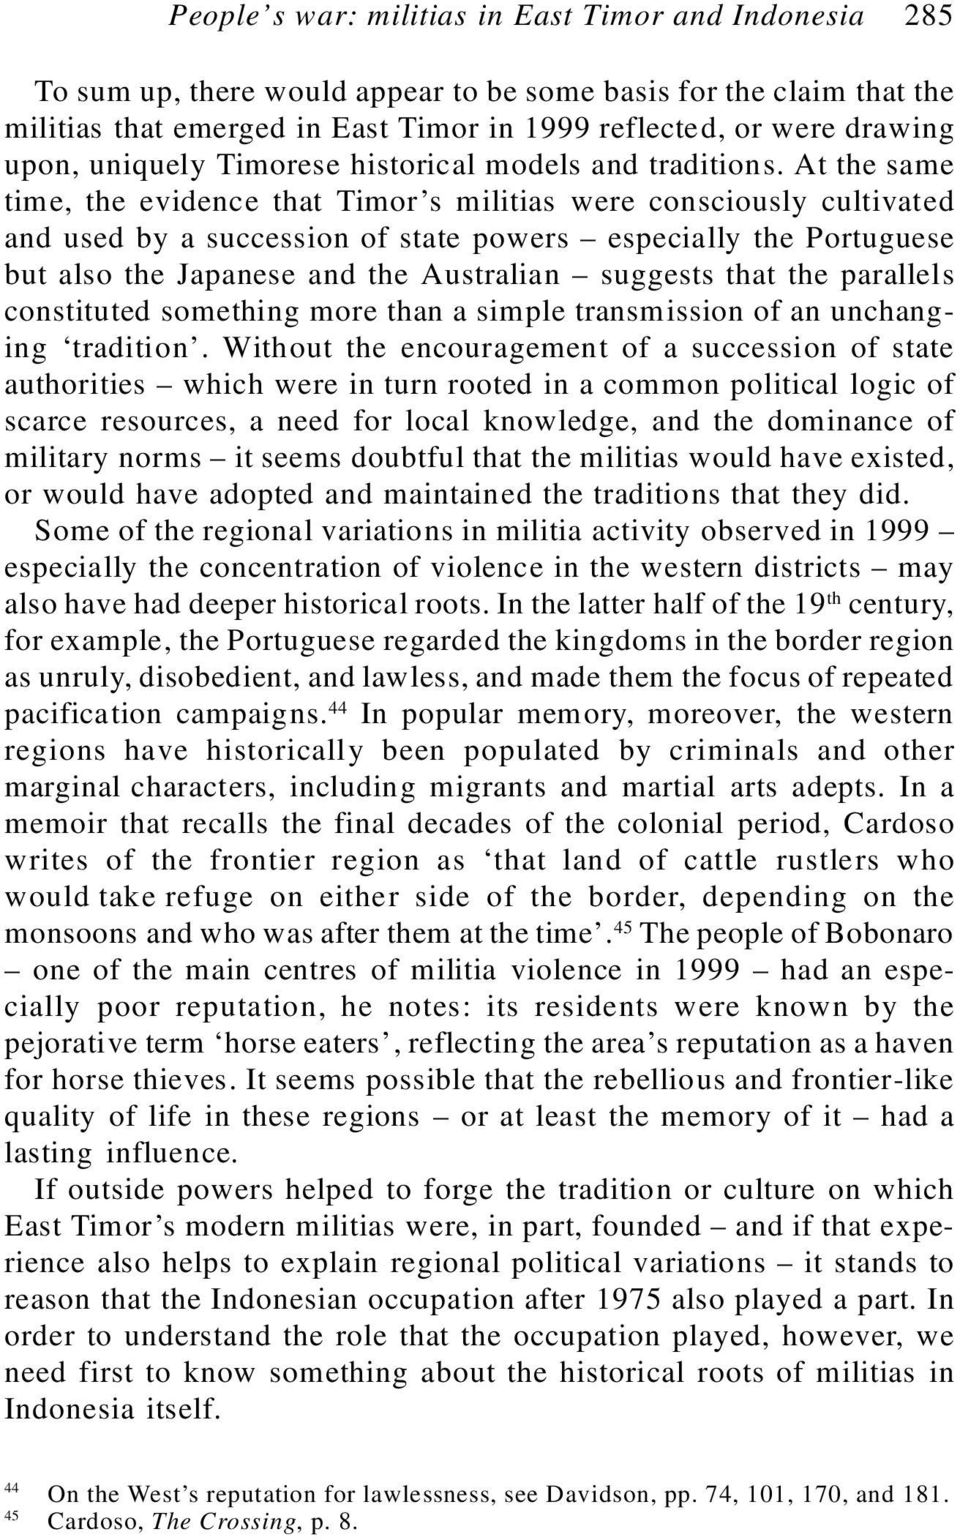 At the same time, the evidence that Timor s militias were consciously cultivated and used by a succession of state powers especially the Portuguese but also the Japanese and the Australian suggests